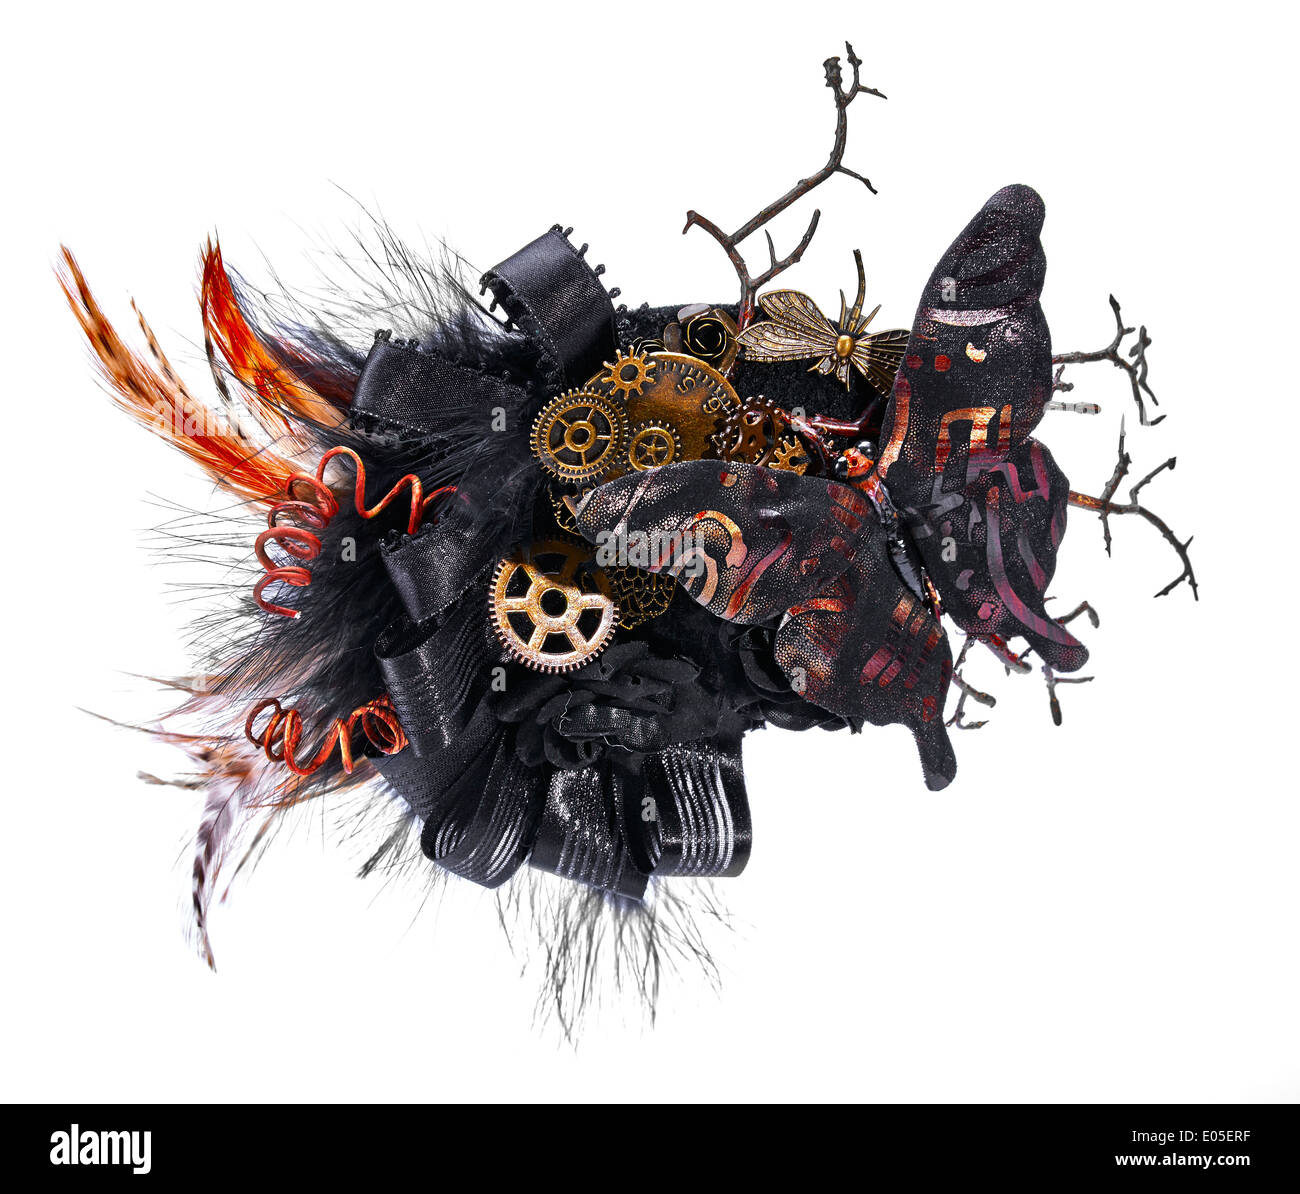 Steam Punk Gothic - Stock Image